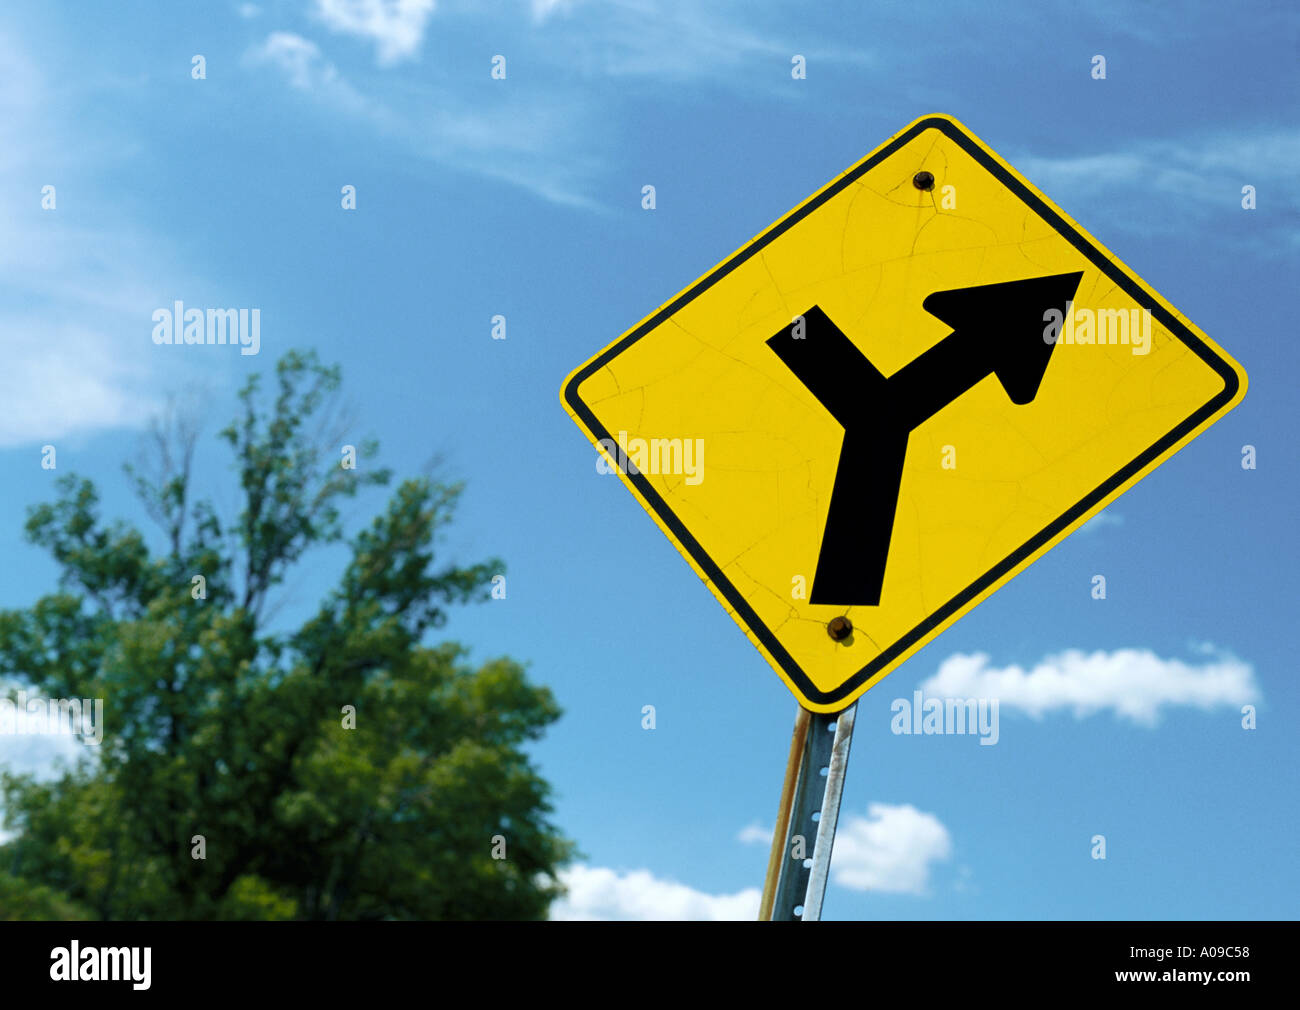 Yellow diamond-shaped road branches off ahead road sign ...